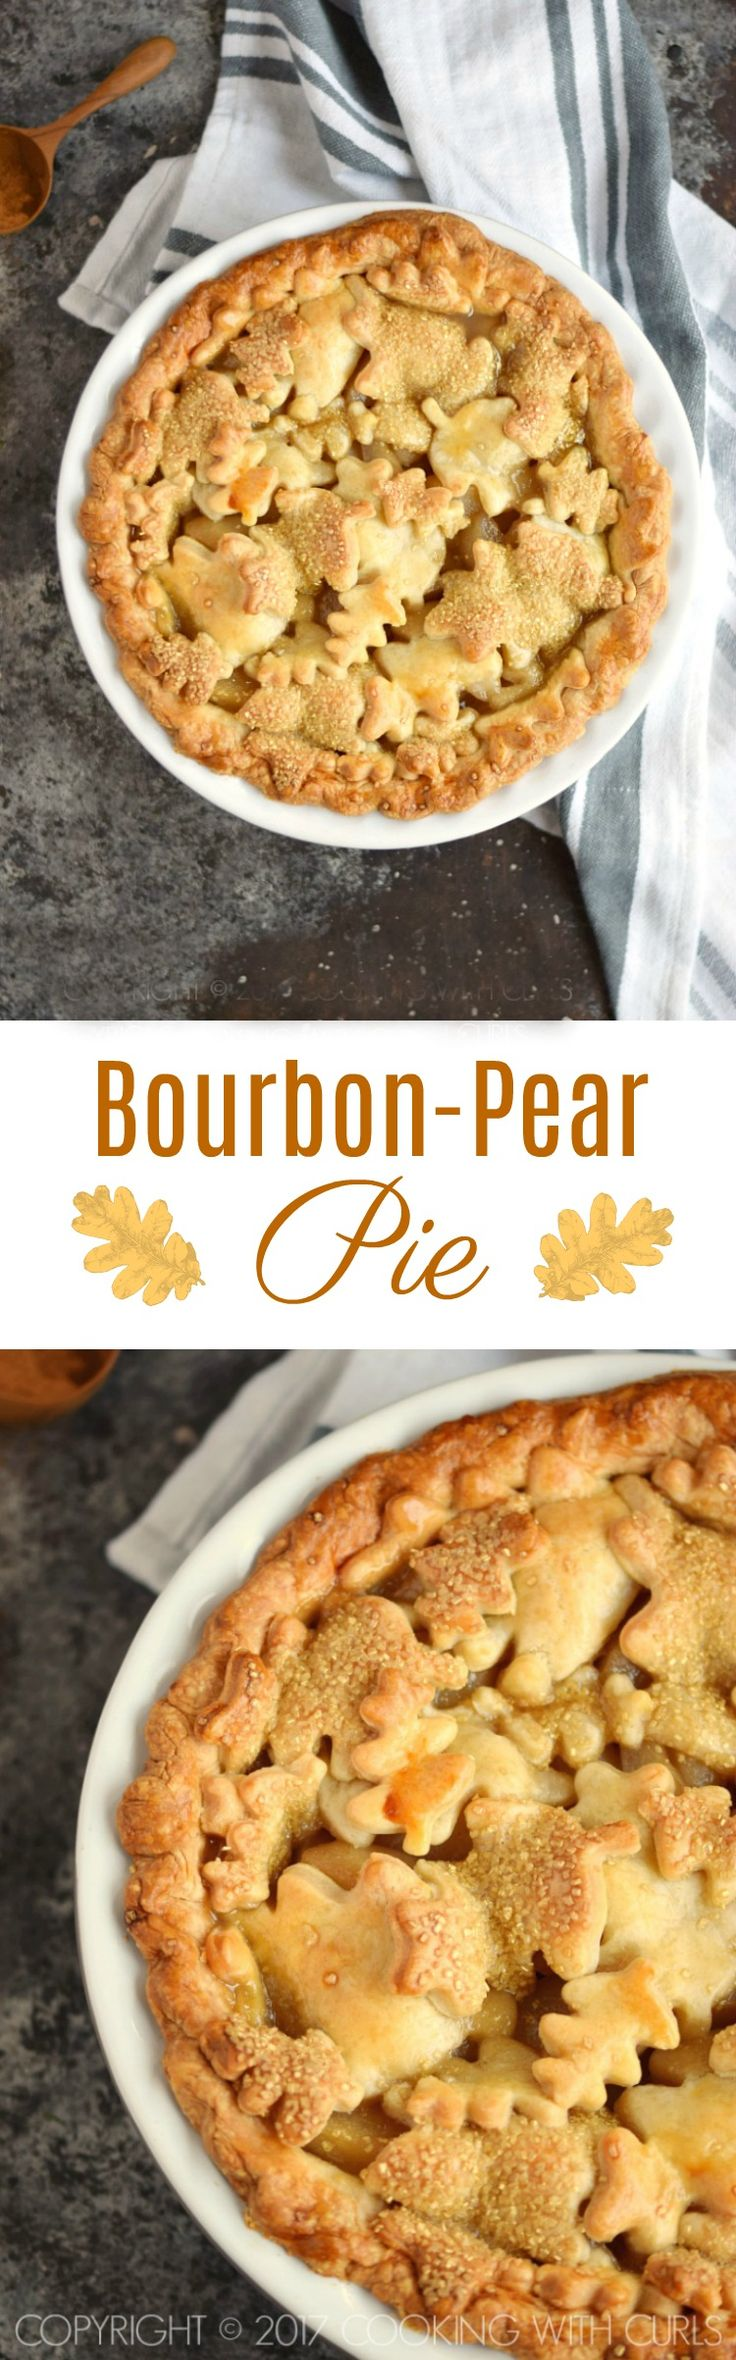 This Bourbon-Pear Pie is sure to impress your friends and family with it's glistening leaf cut-out crust, tender pears, and spiced filling! COPYRIGHT © 2017 COOKING WITH CURLS